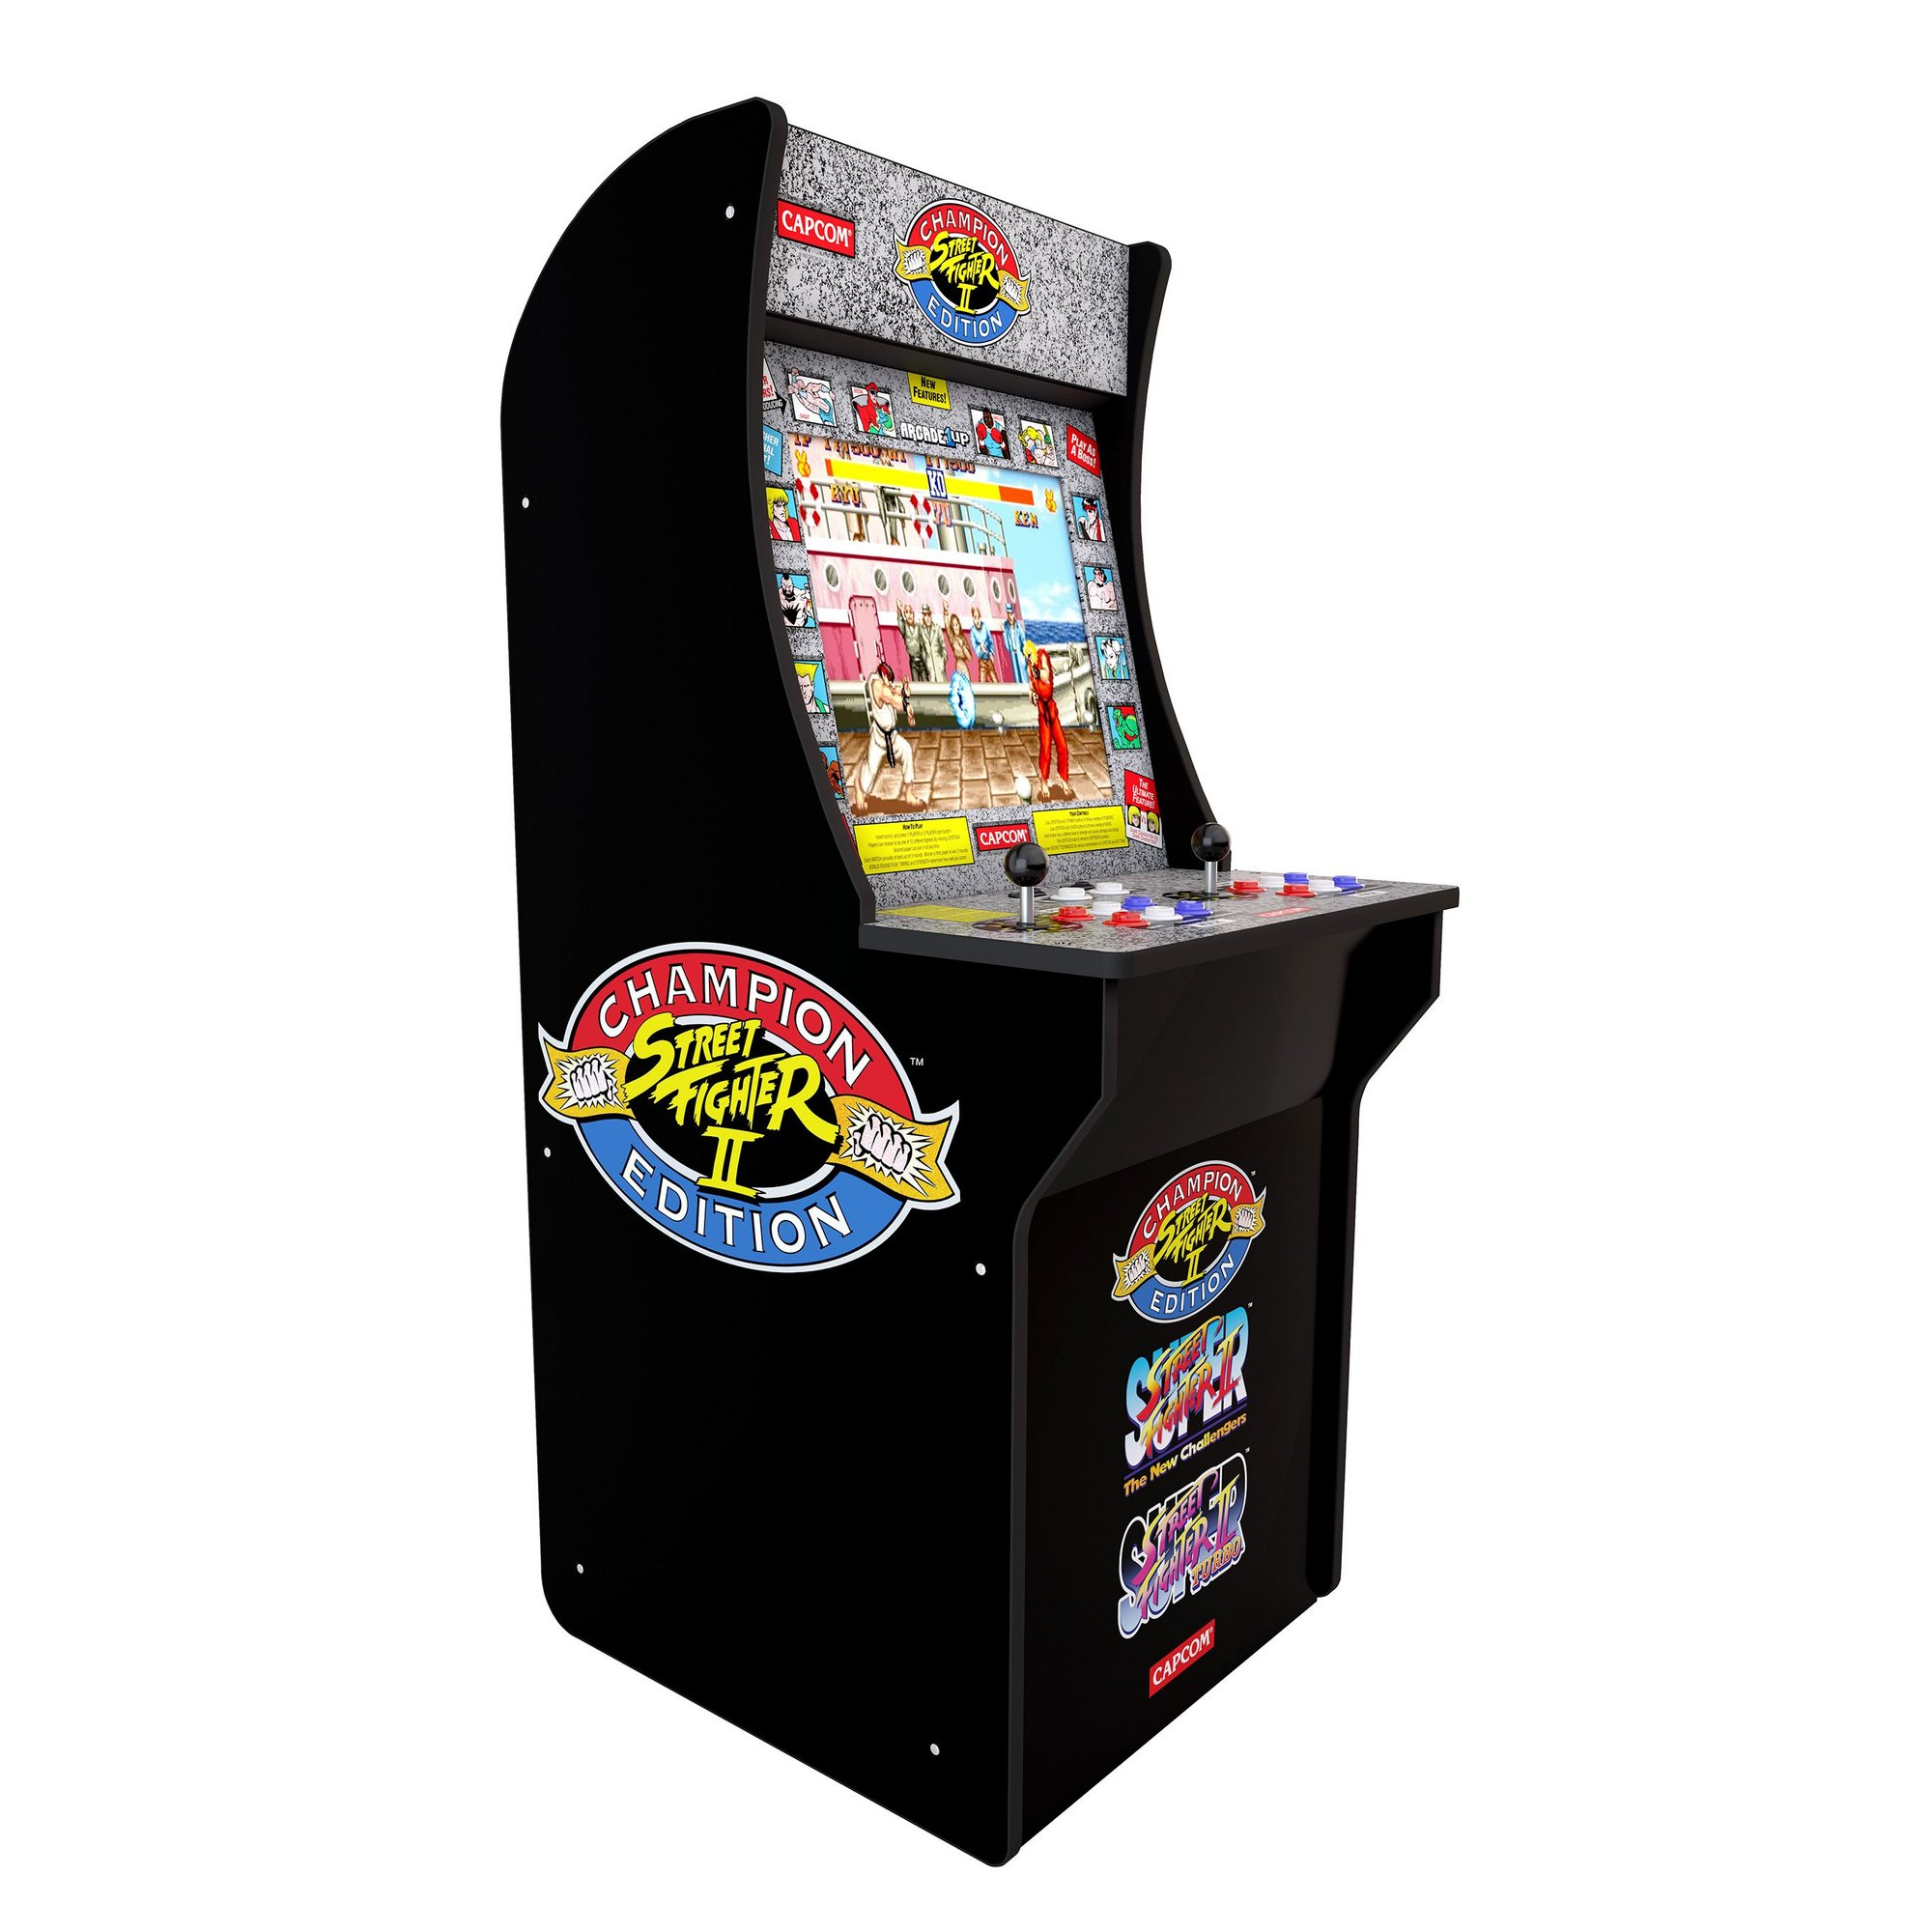 Image of Arcade1Up: Street Fighter